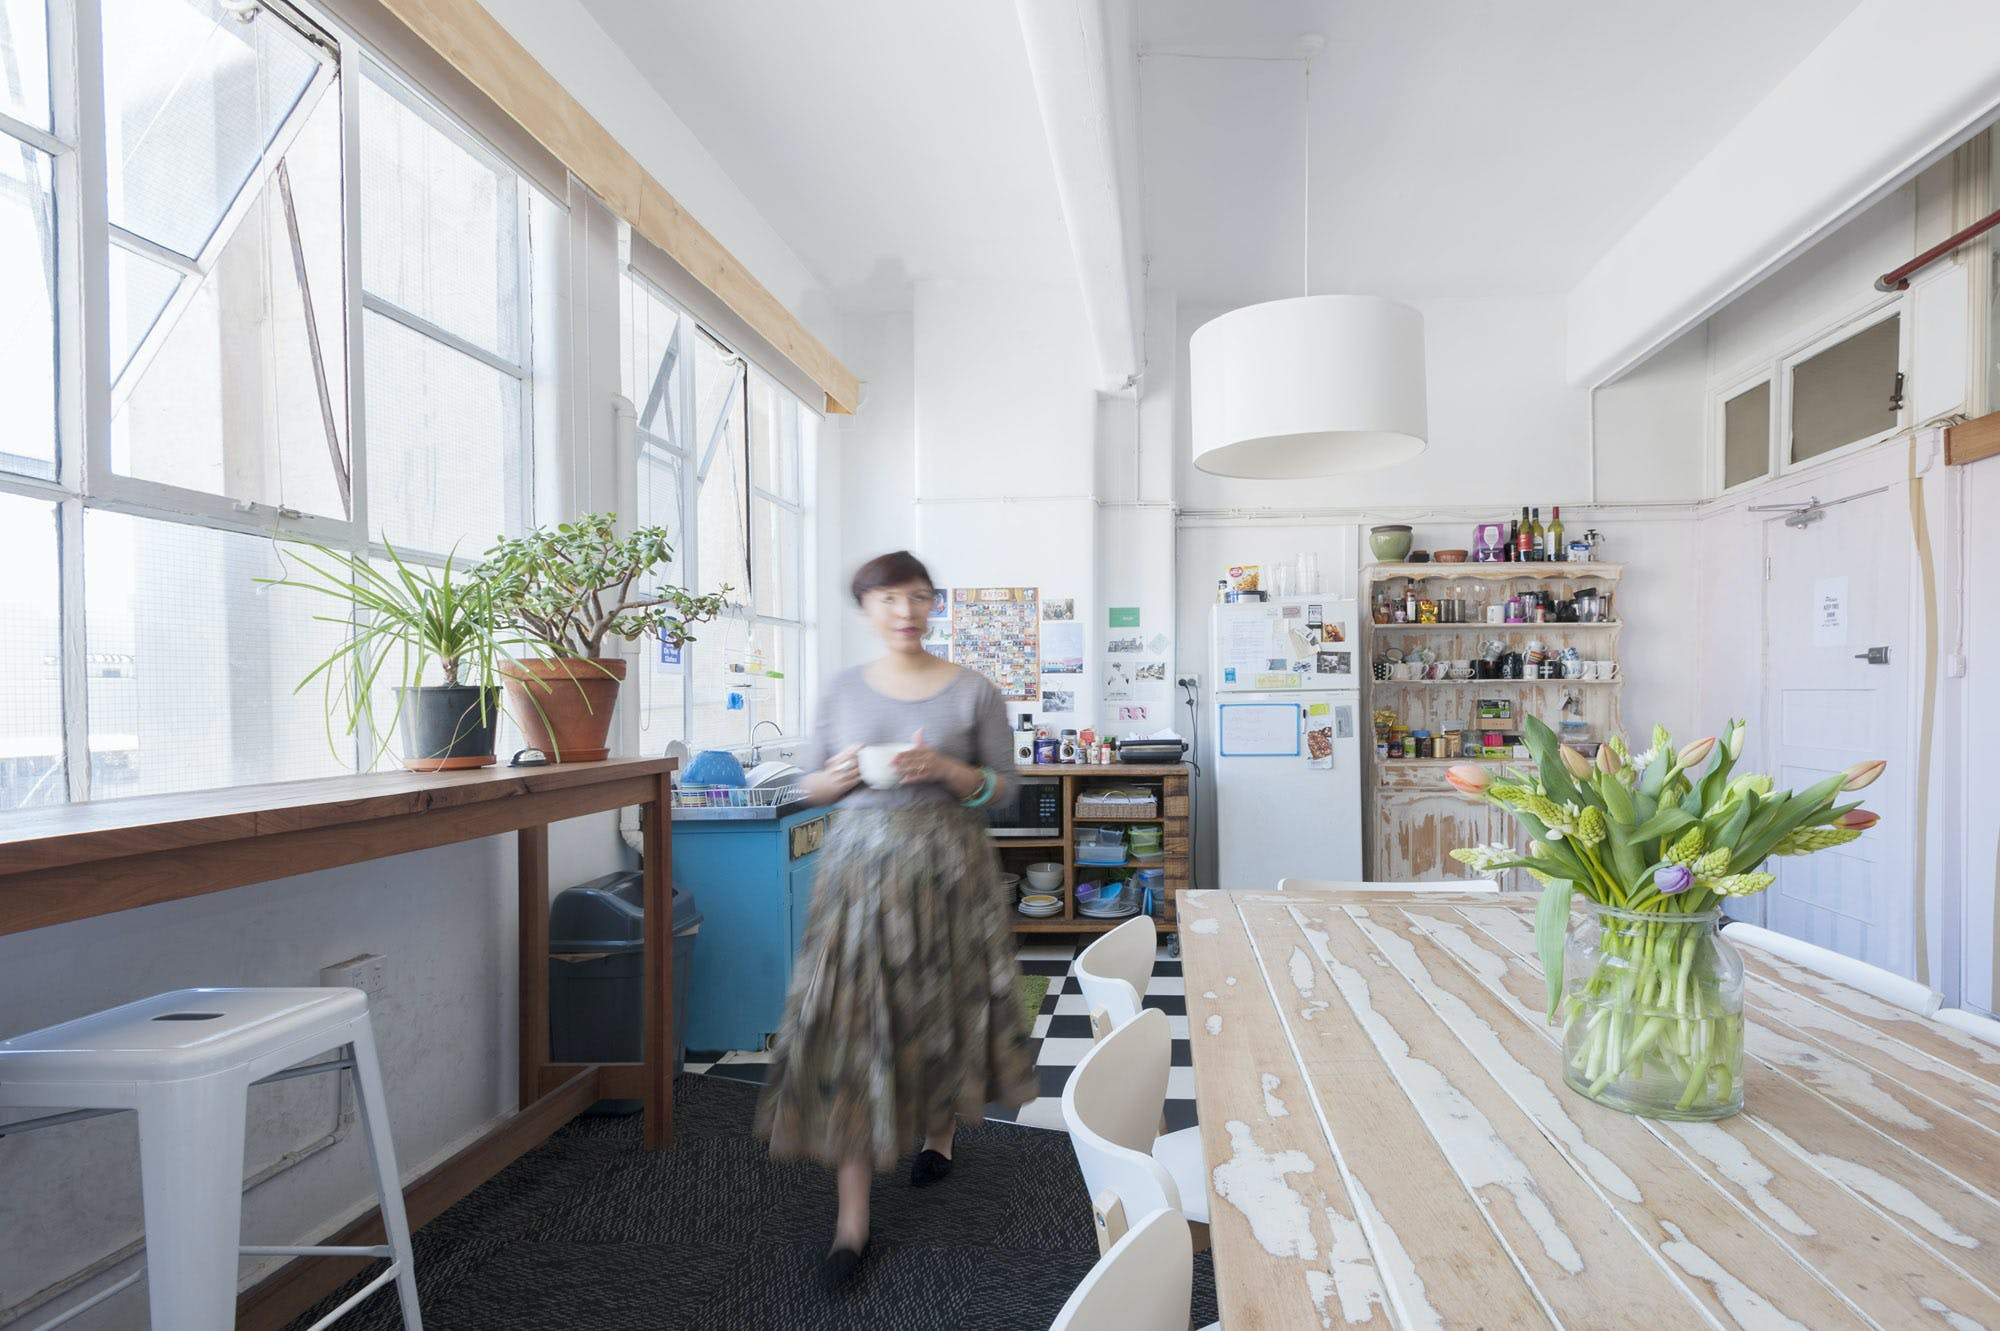 Artist in Residence Space, coworking at The Nicholson Building, image 1